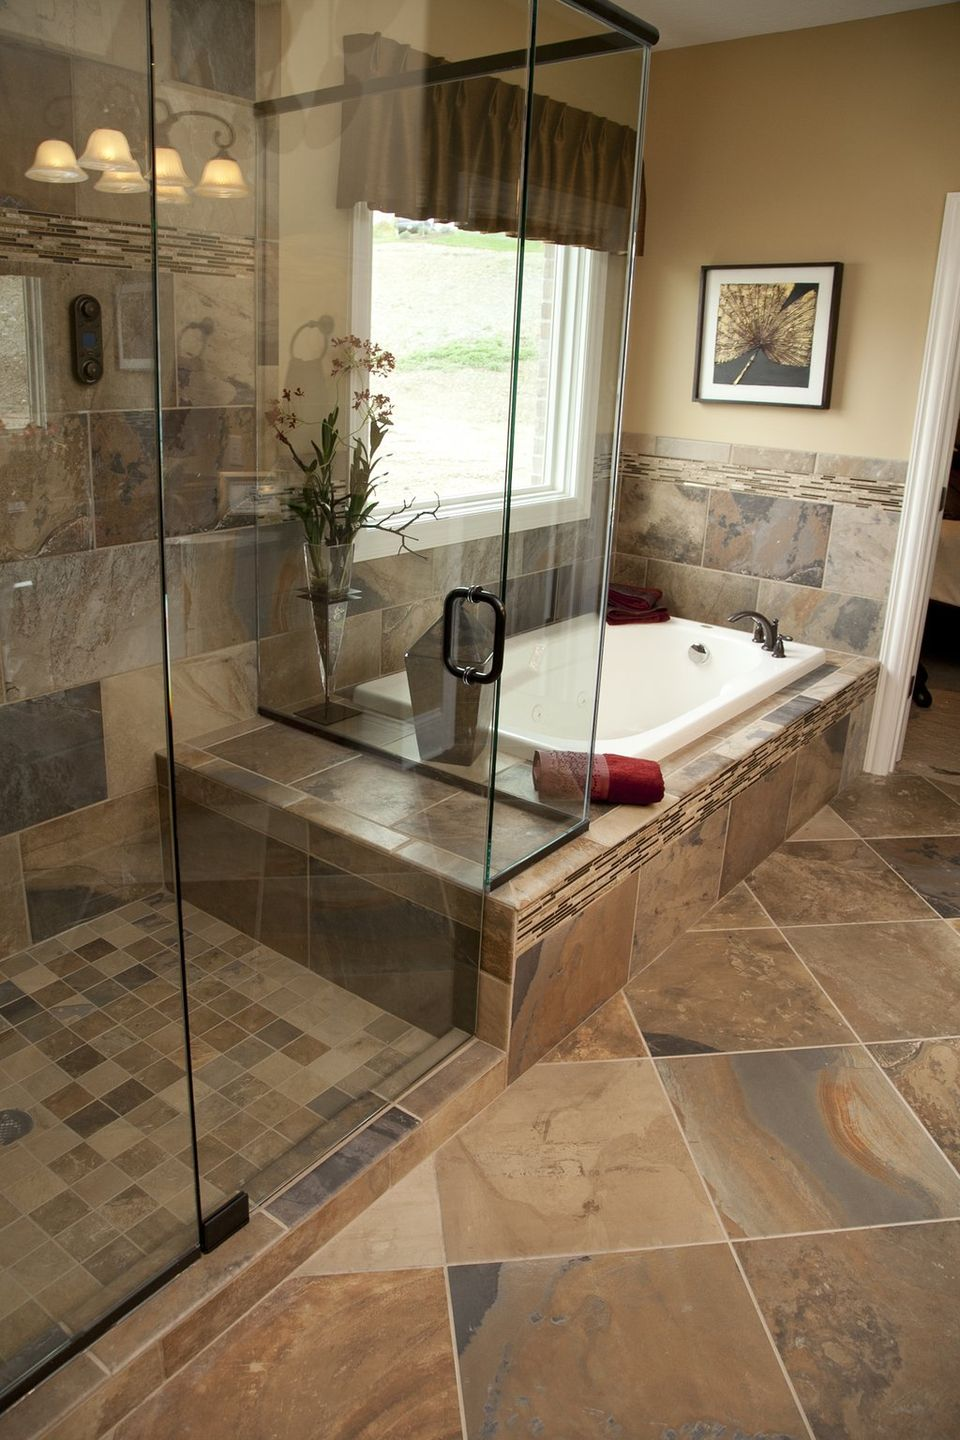 33 stunning pictures and ideas of natural stone bathroom for Bathroom tile ideas for small bathrooms pictures